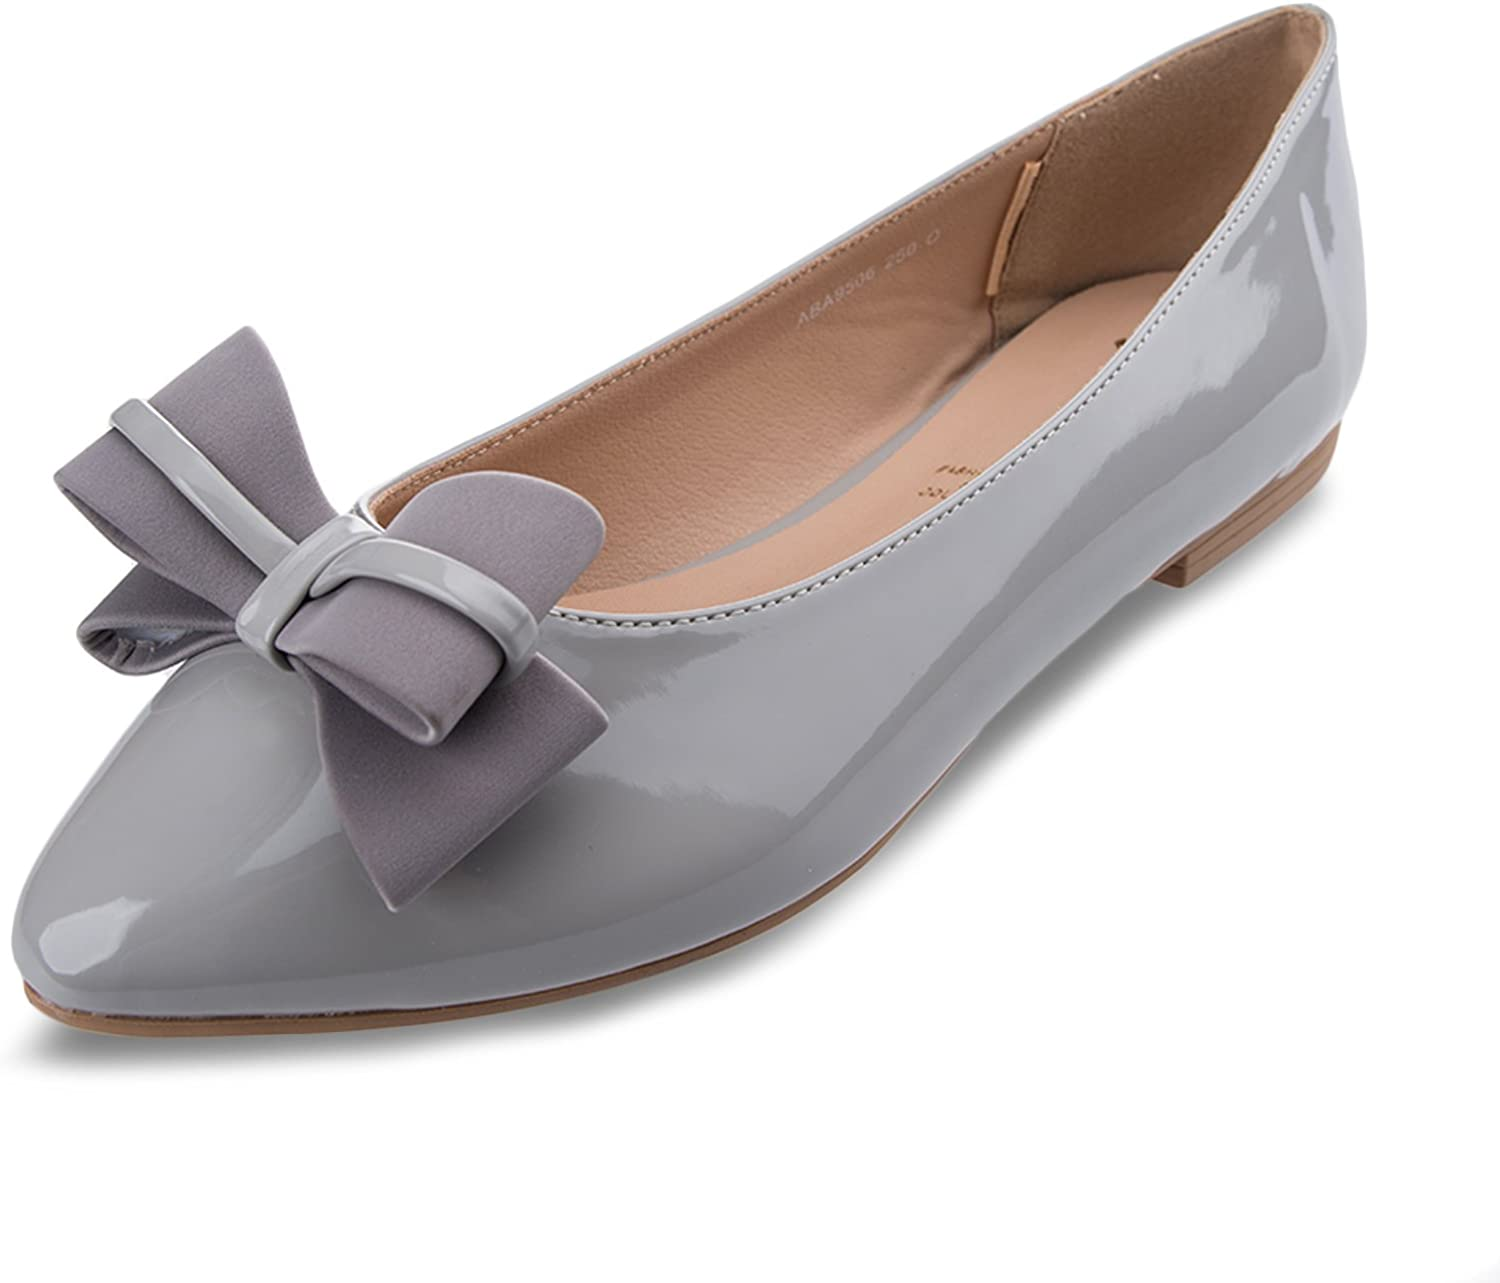 BF Sole Women's Double Bow Dress Slip On Flat shoes